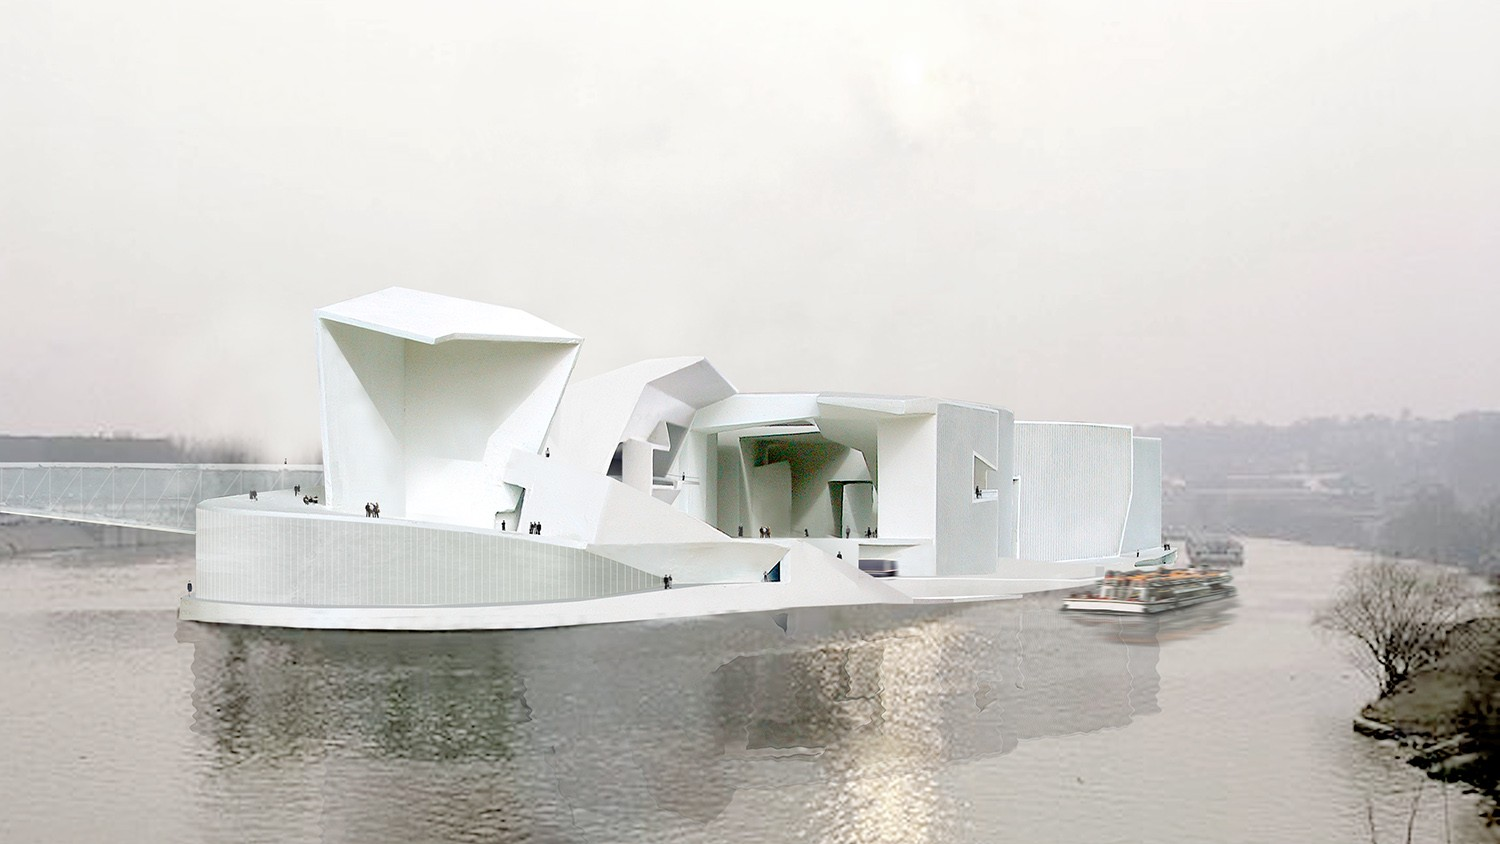 https://stevenholl.sfo2.digitaloceanspaces.com/uploads/projects/project-images/StevenHollArchitects_IleSeguin_postcardimage_WH.jpg